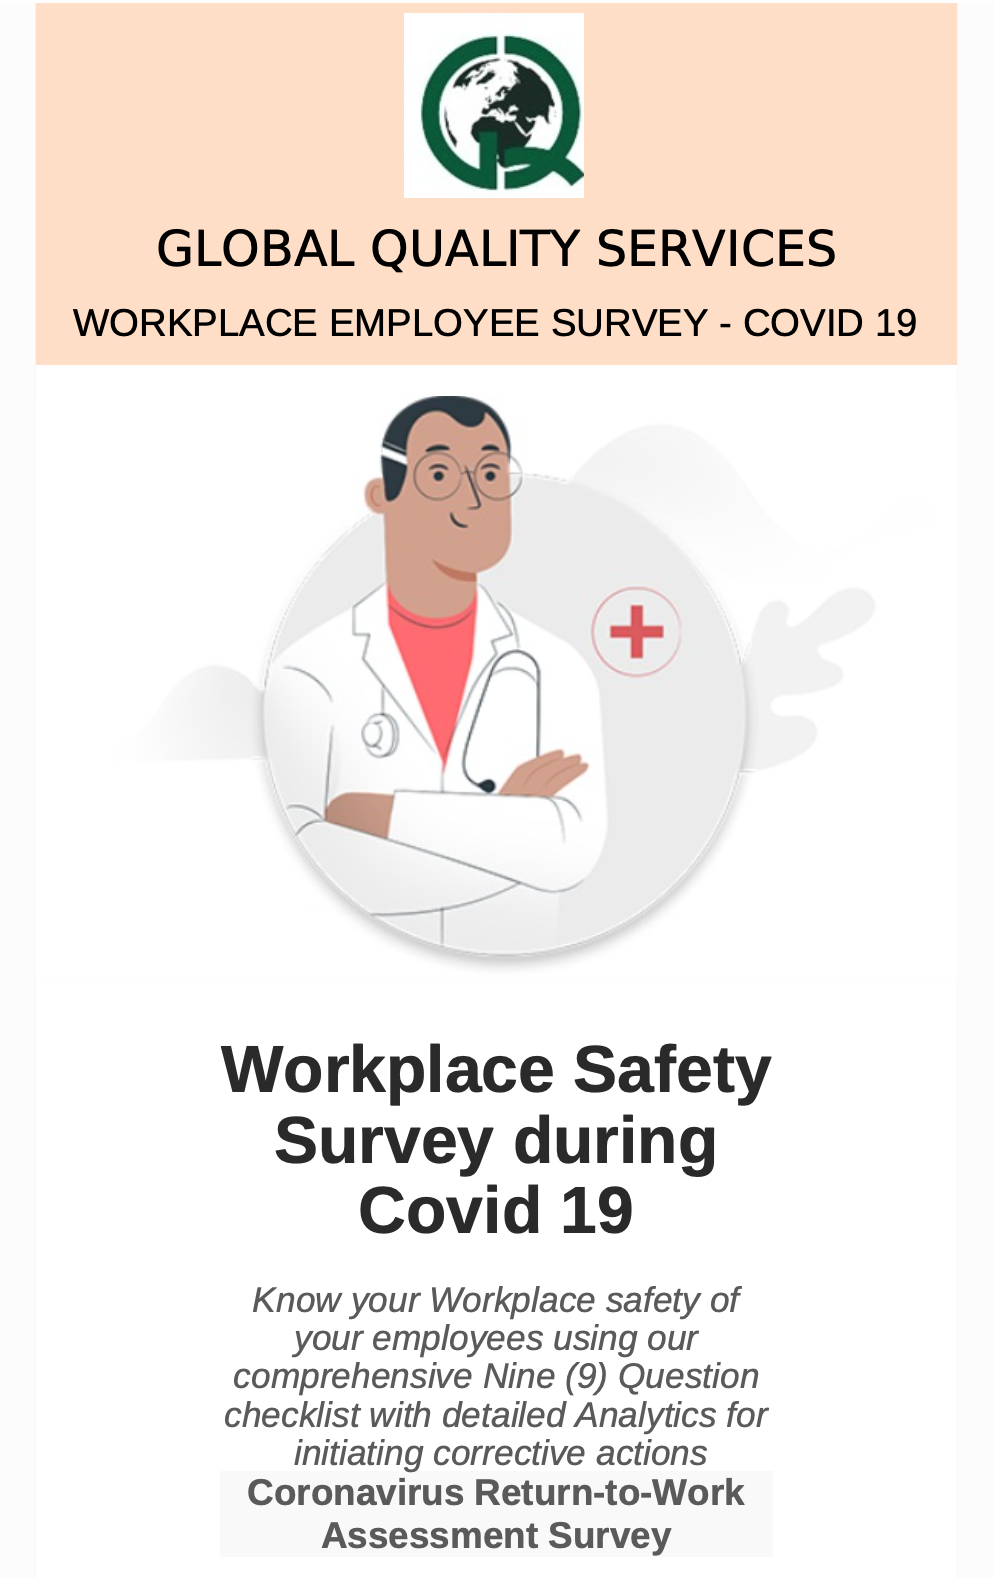 WORKPLACE SAFETY SURVEY DURING COVID-19